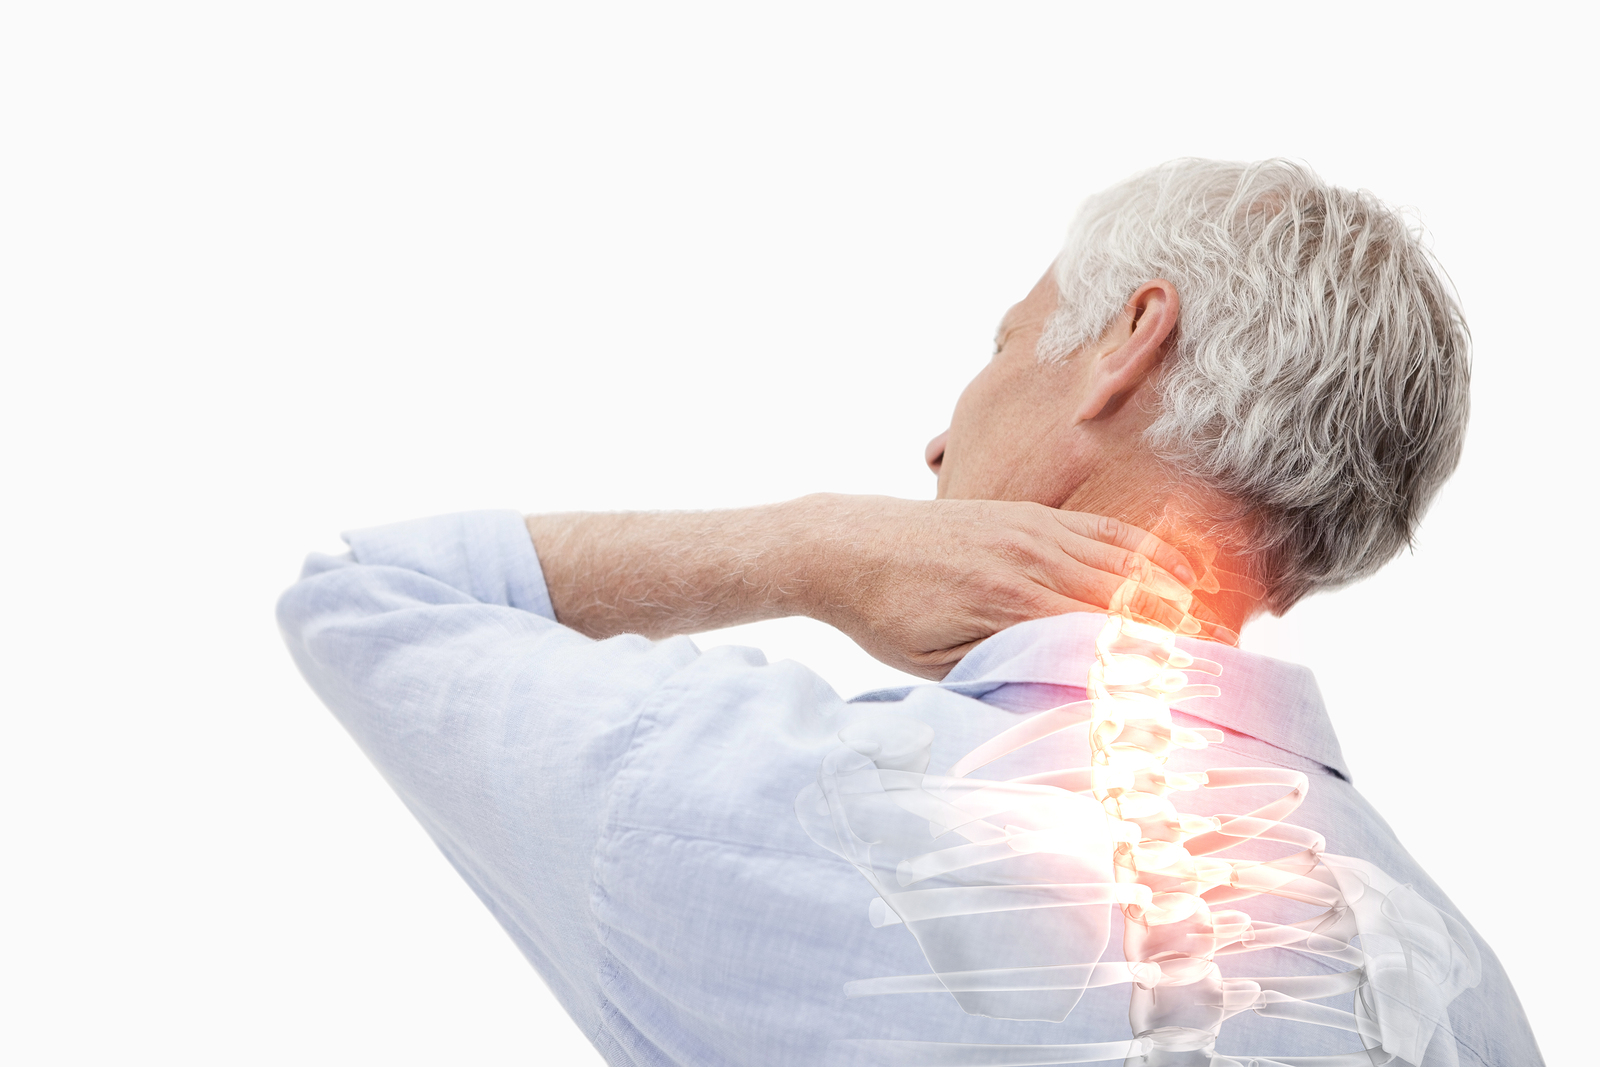 Accident Clinic in Miami – Dr. Dean M. Zusmer Chiropractor in Miami